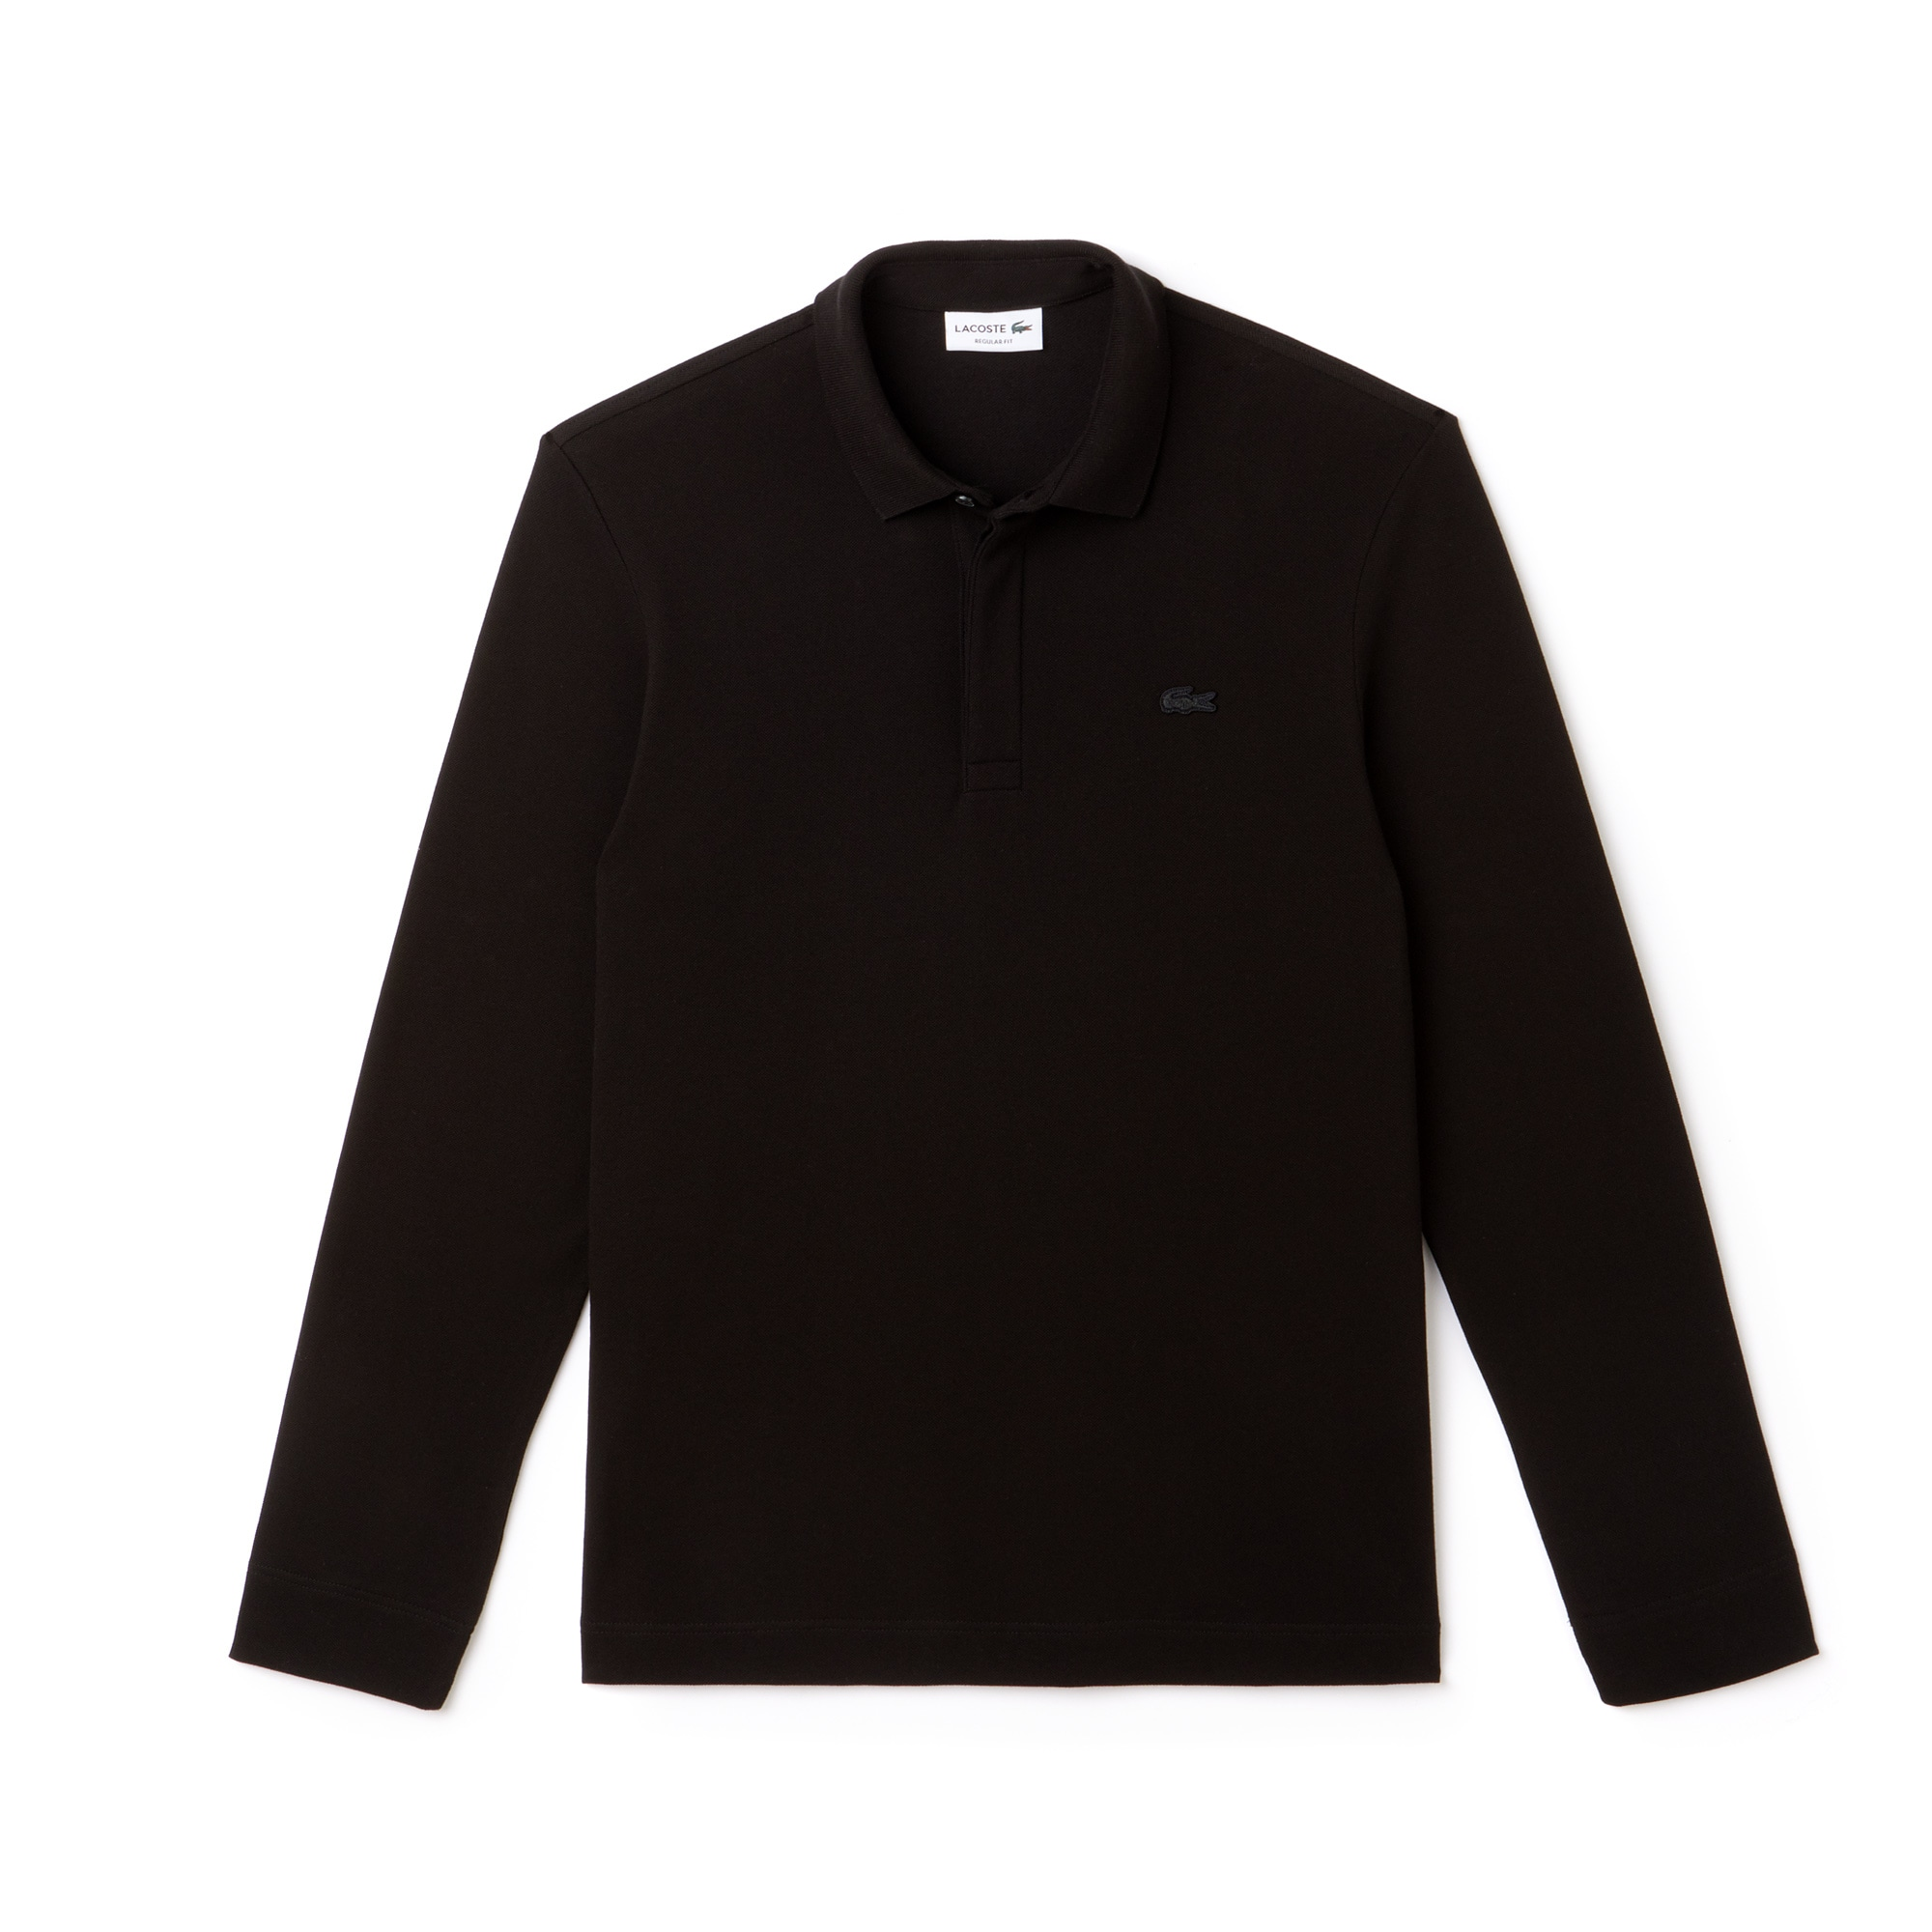 Men's Long-sleeve Lacoste Paris Polo Shirt Regular Fit Stretch Cotton Piqué